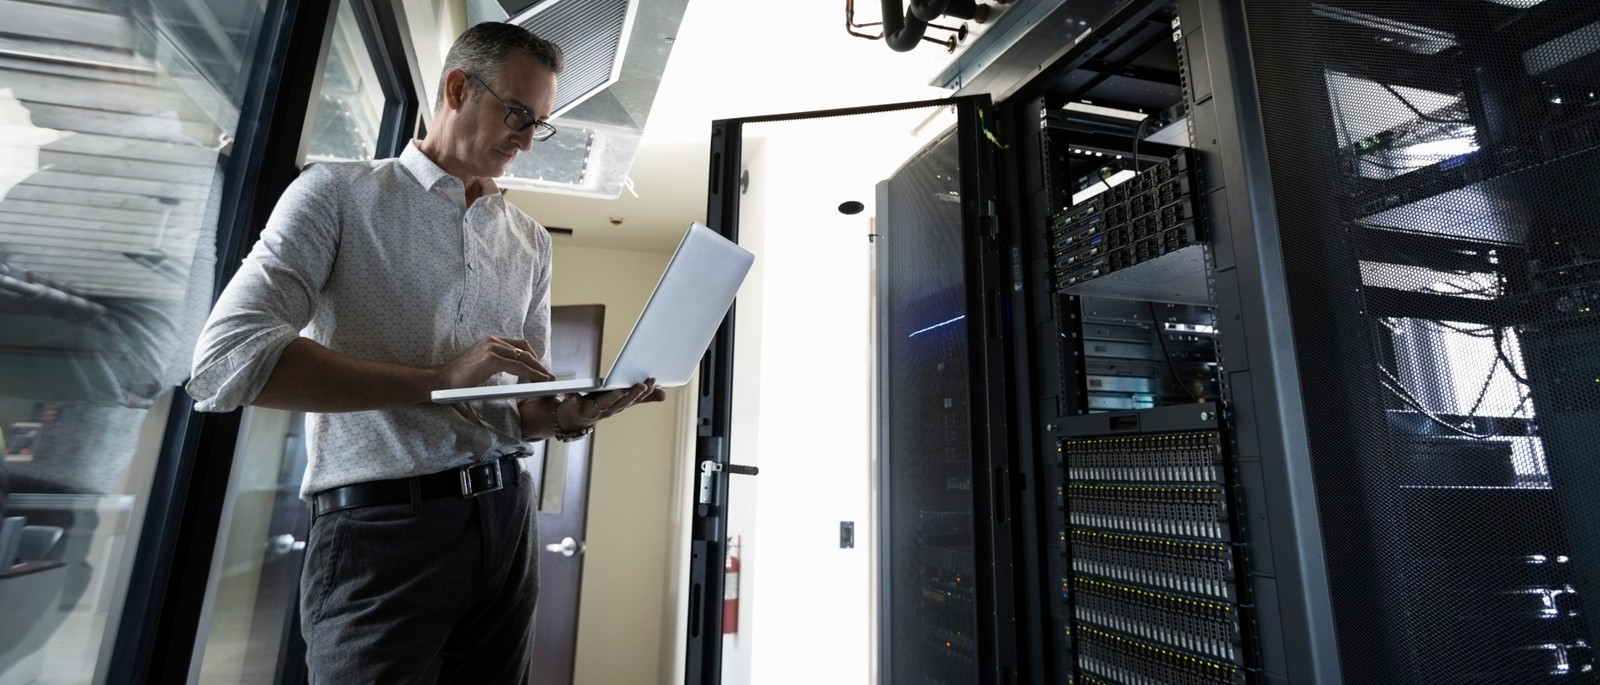 man standing in server room